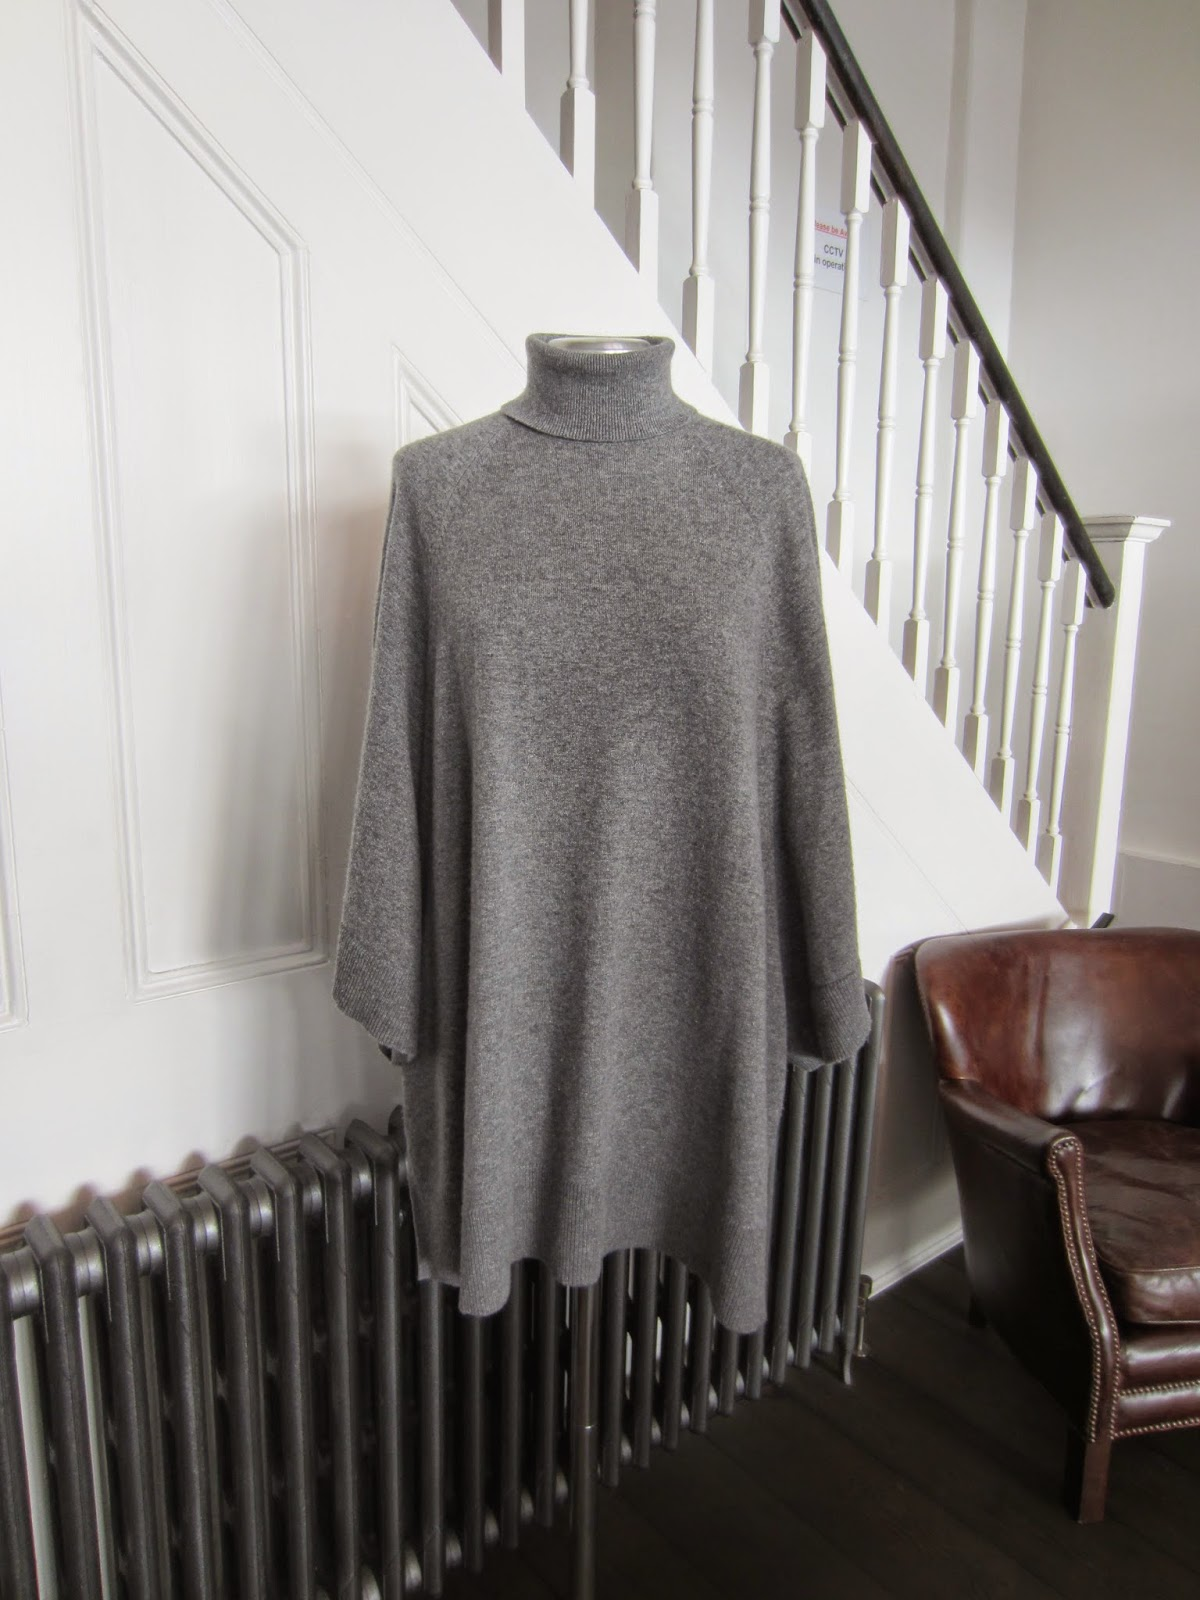 Michael Kors Grey Cashmere Knit